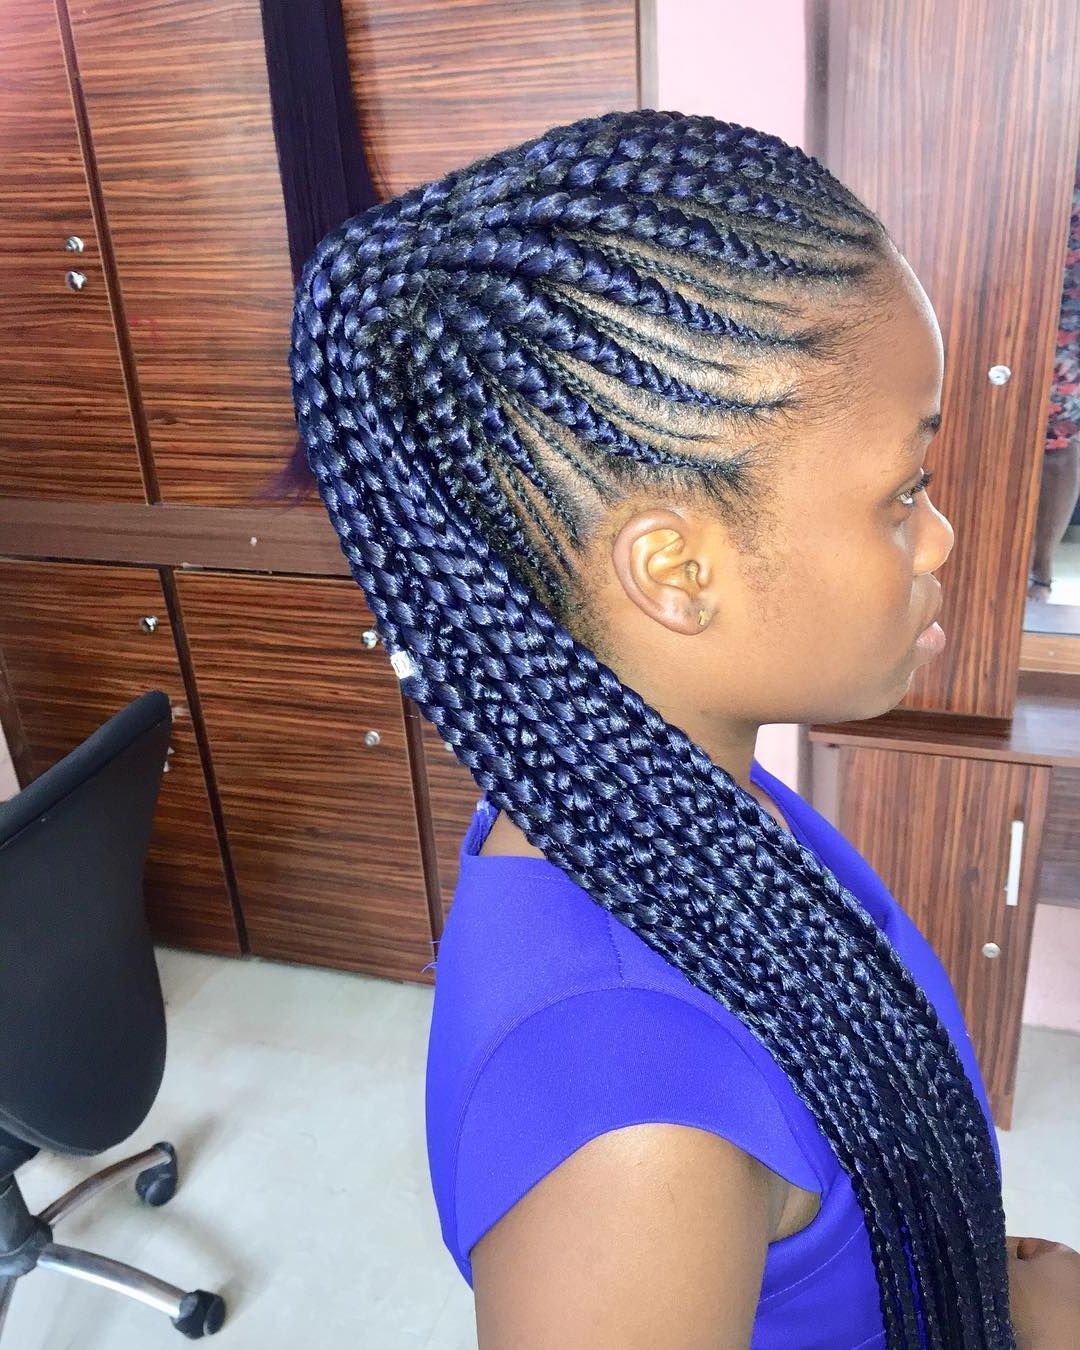 Most Recent Stylish Braids Ponytail Hairstyles With Regard To 30 Cute Braided Ponytail Hairstyles For Black Hair That Will Make (View 14 of 20)